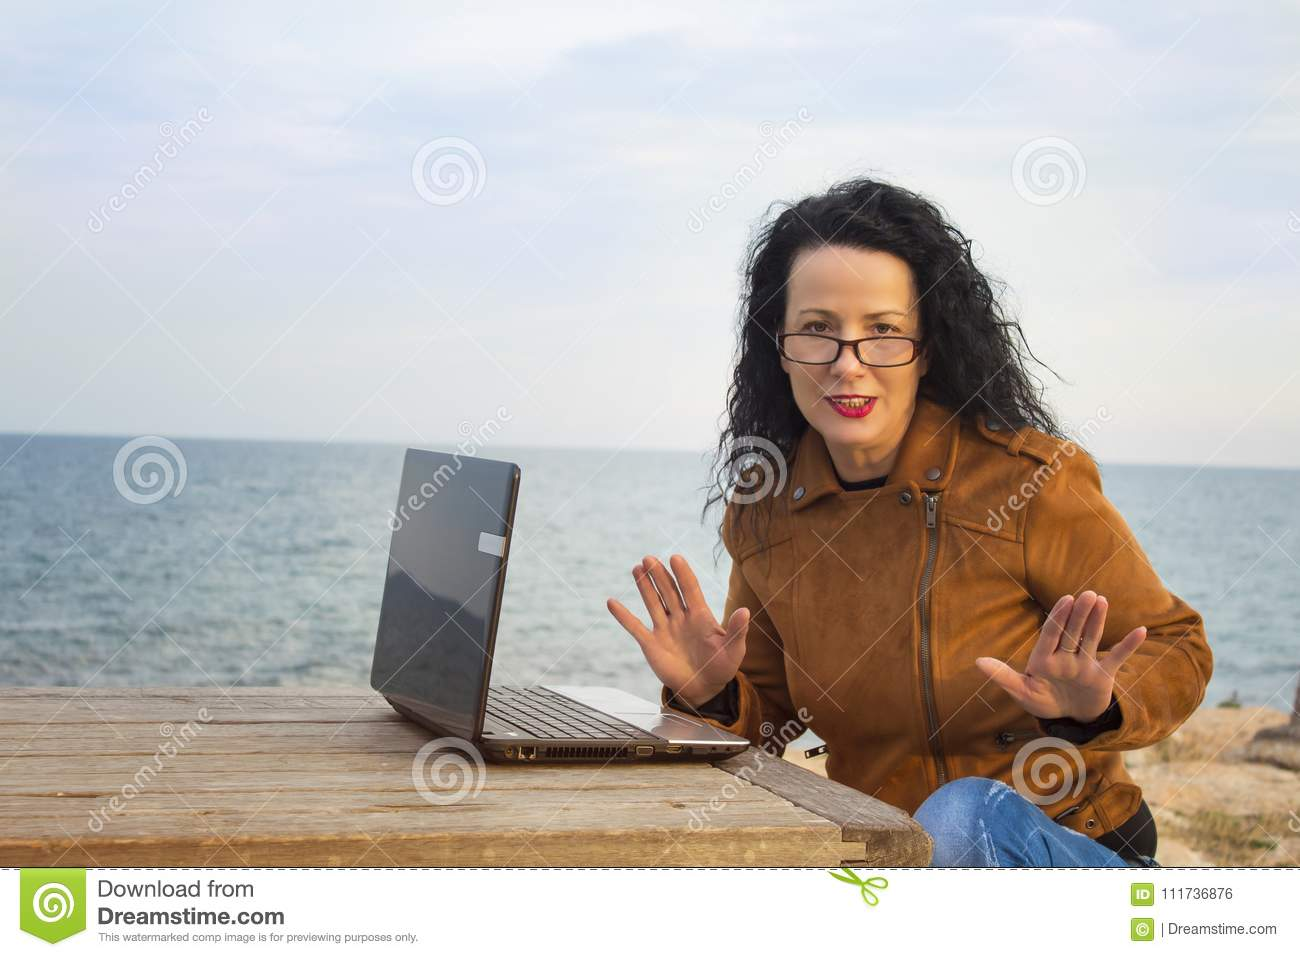 Young woman on shore with computer.4